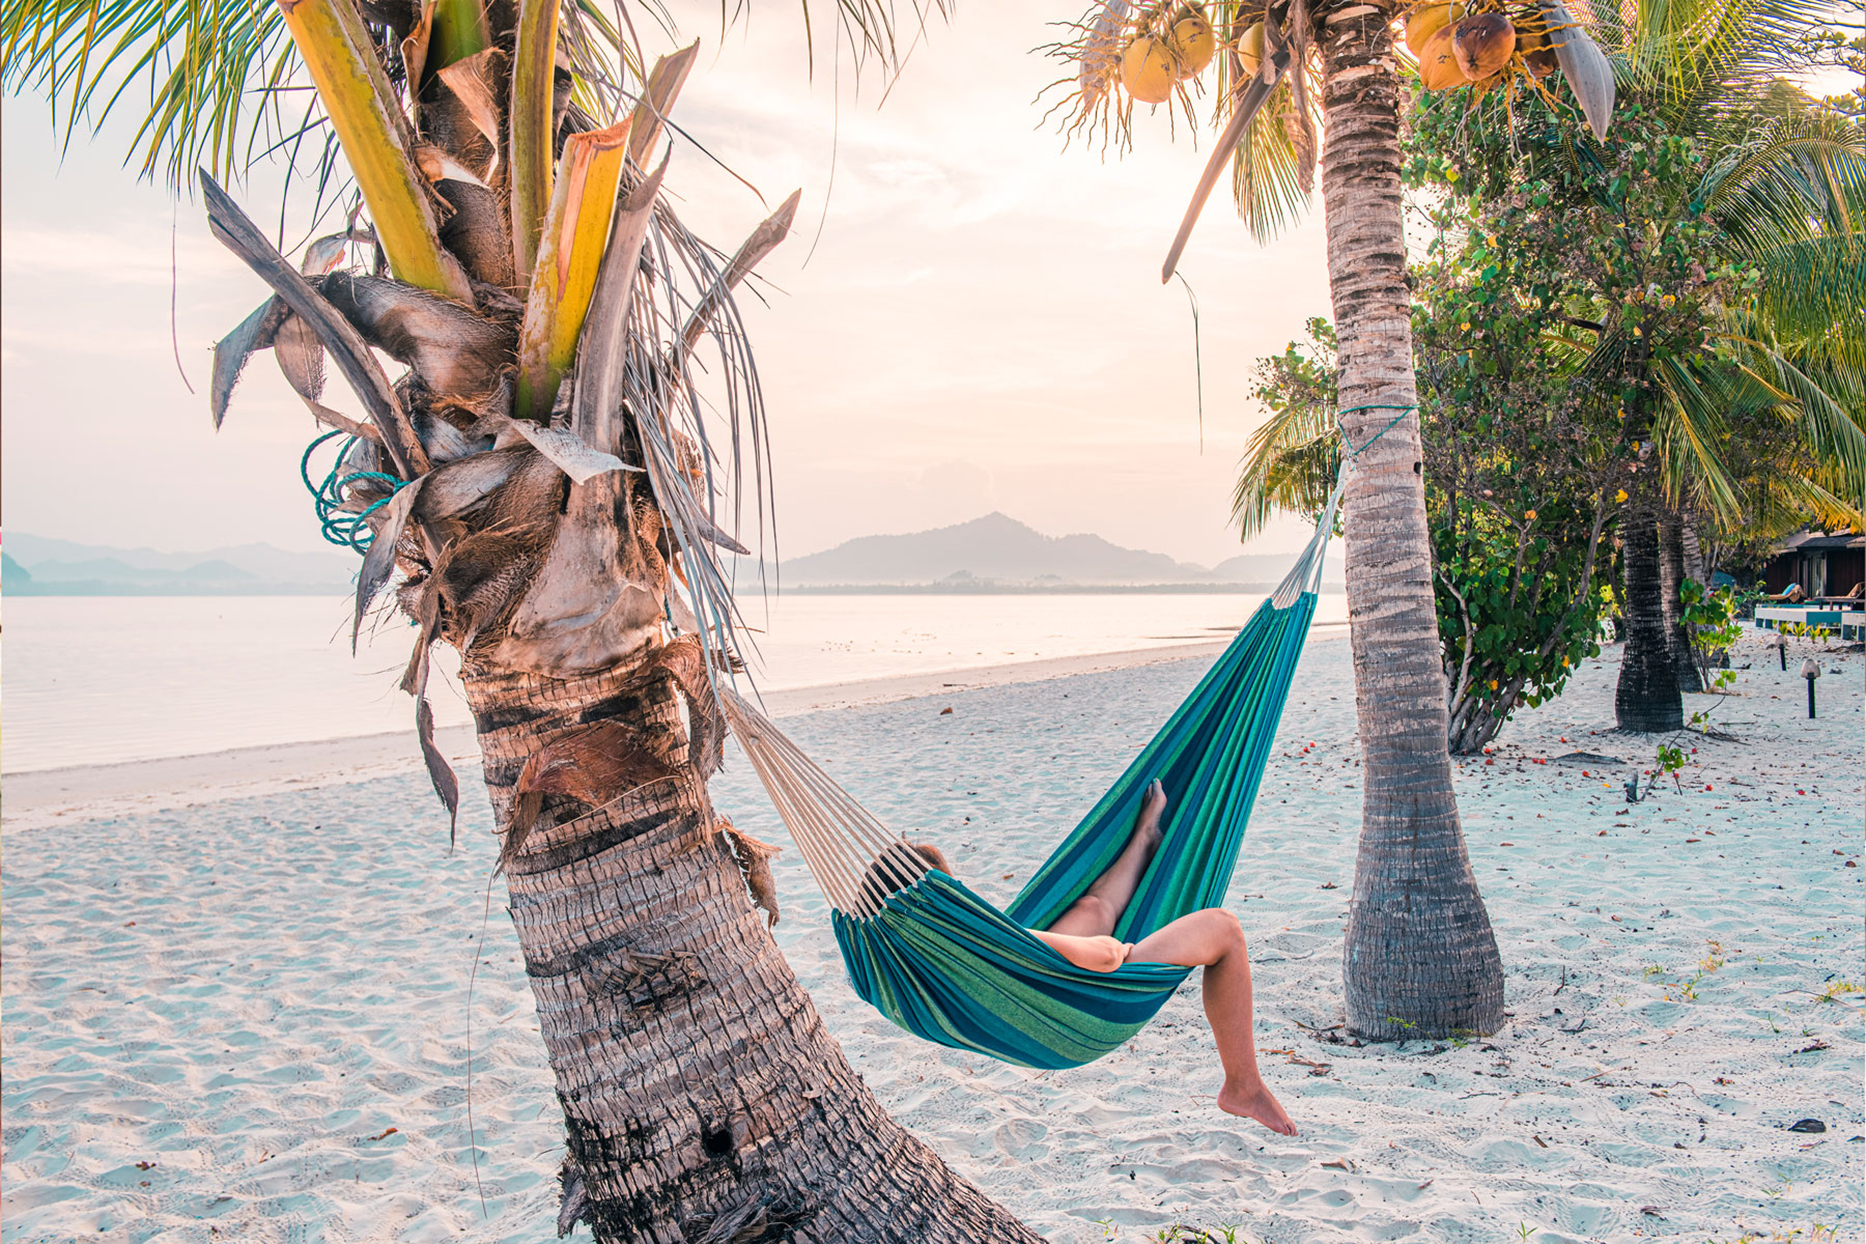 A woman laying in a hammock on a beach